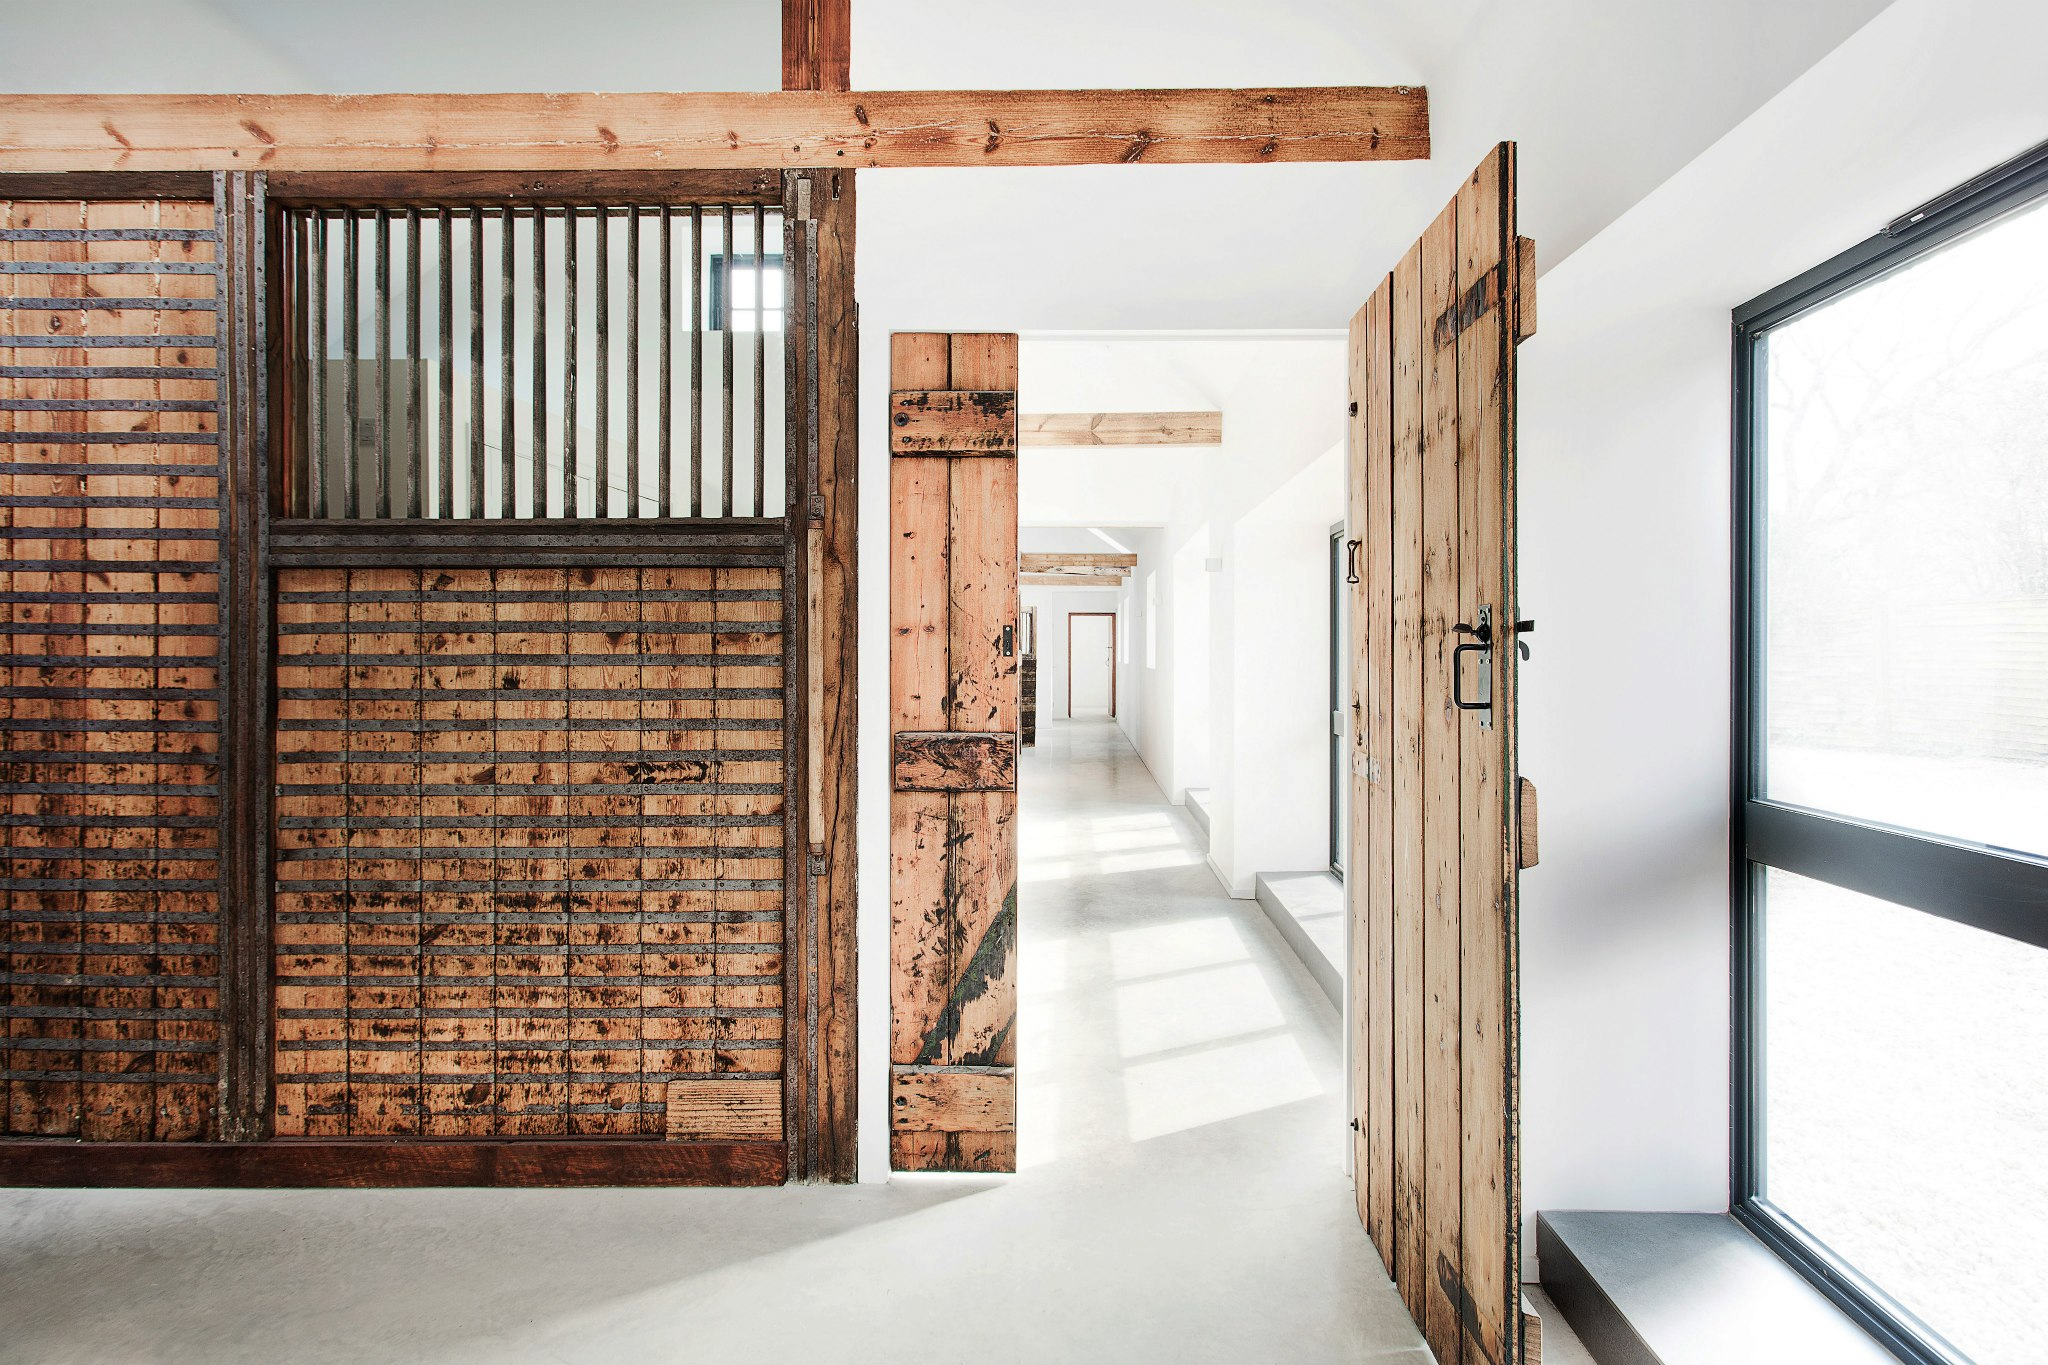 the stables by ar design studio9 Old Stables Turned into Contemporary Home